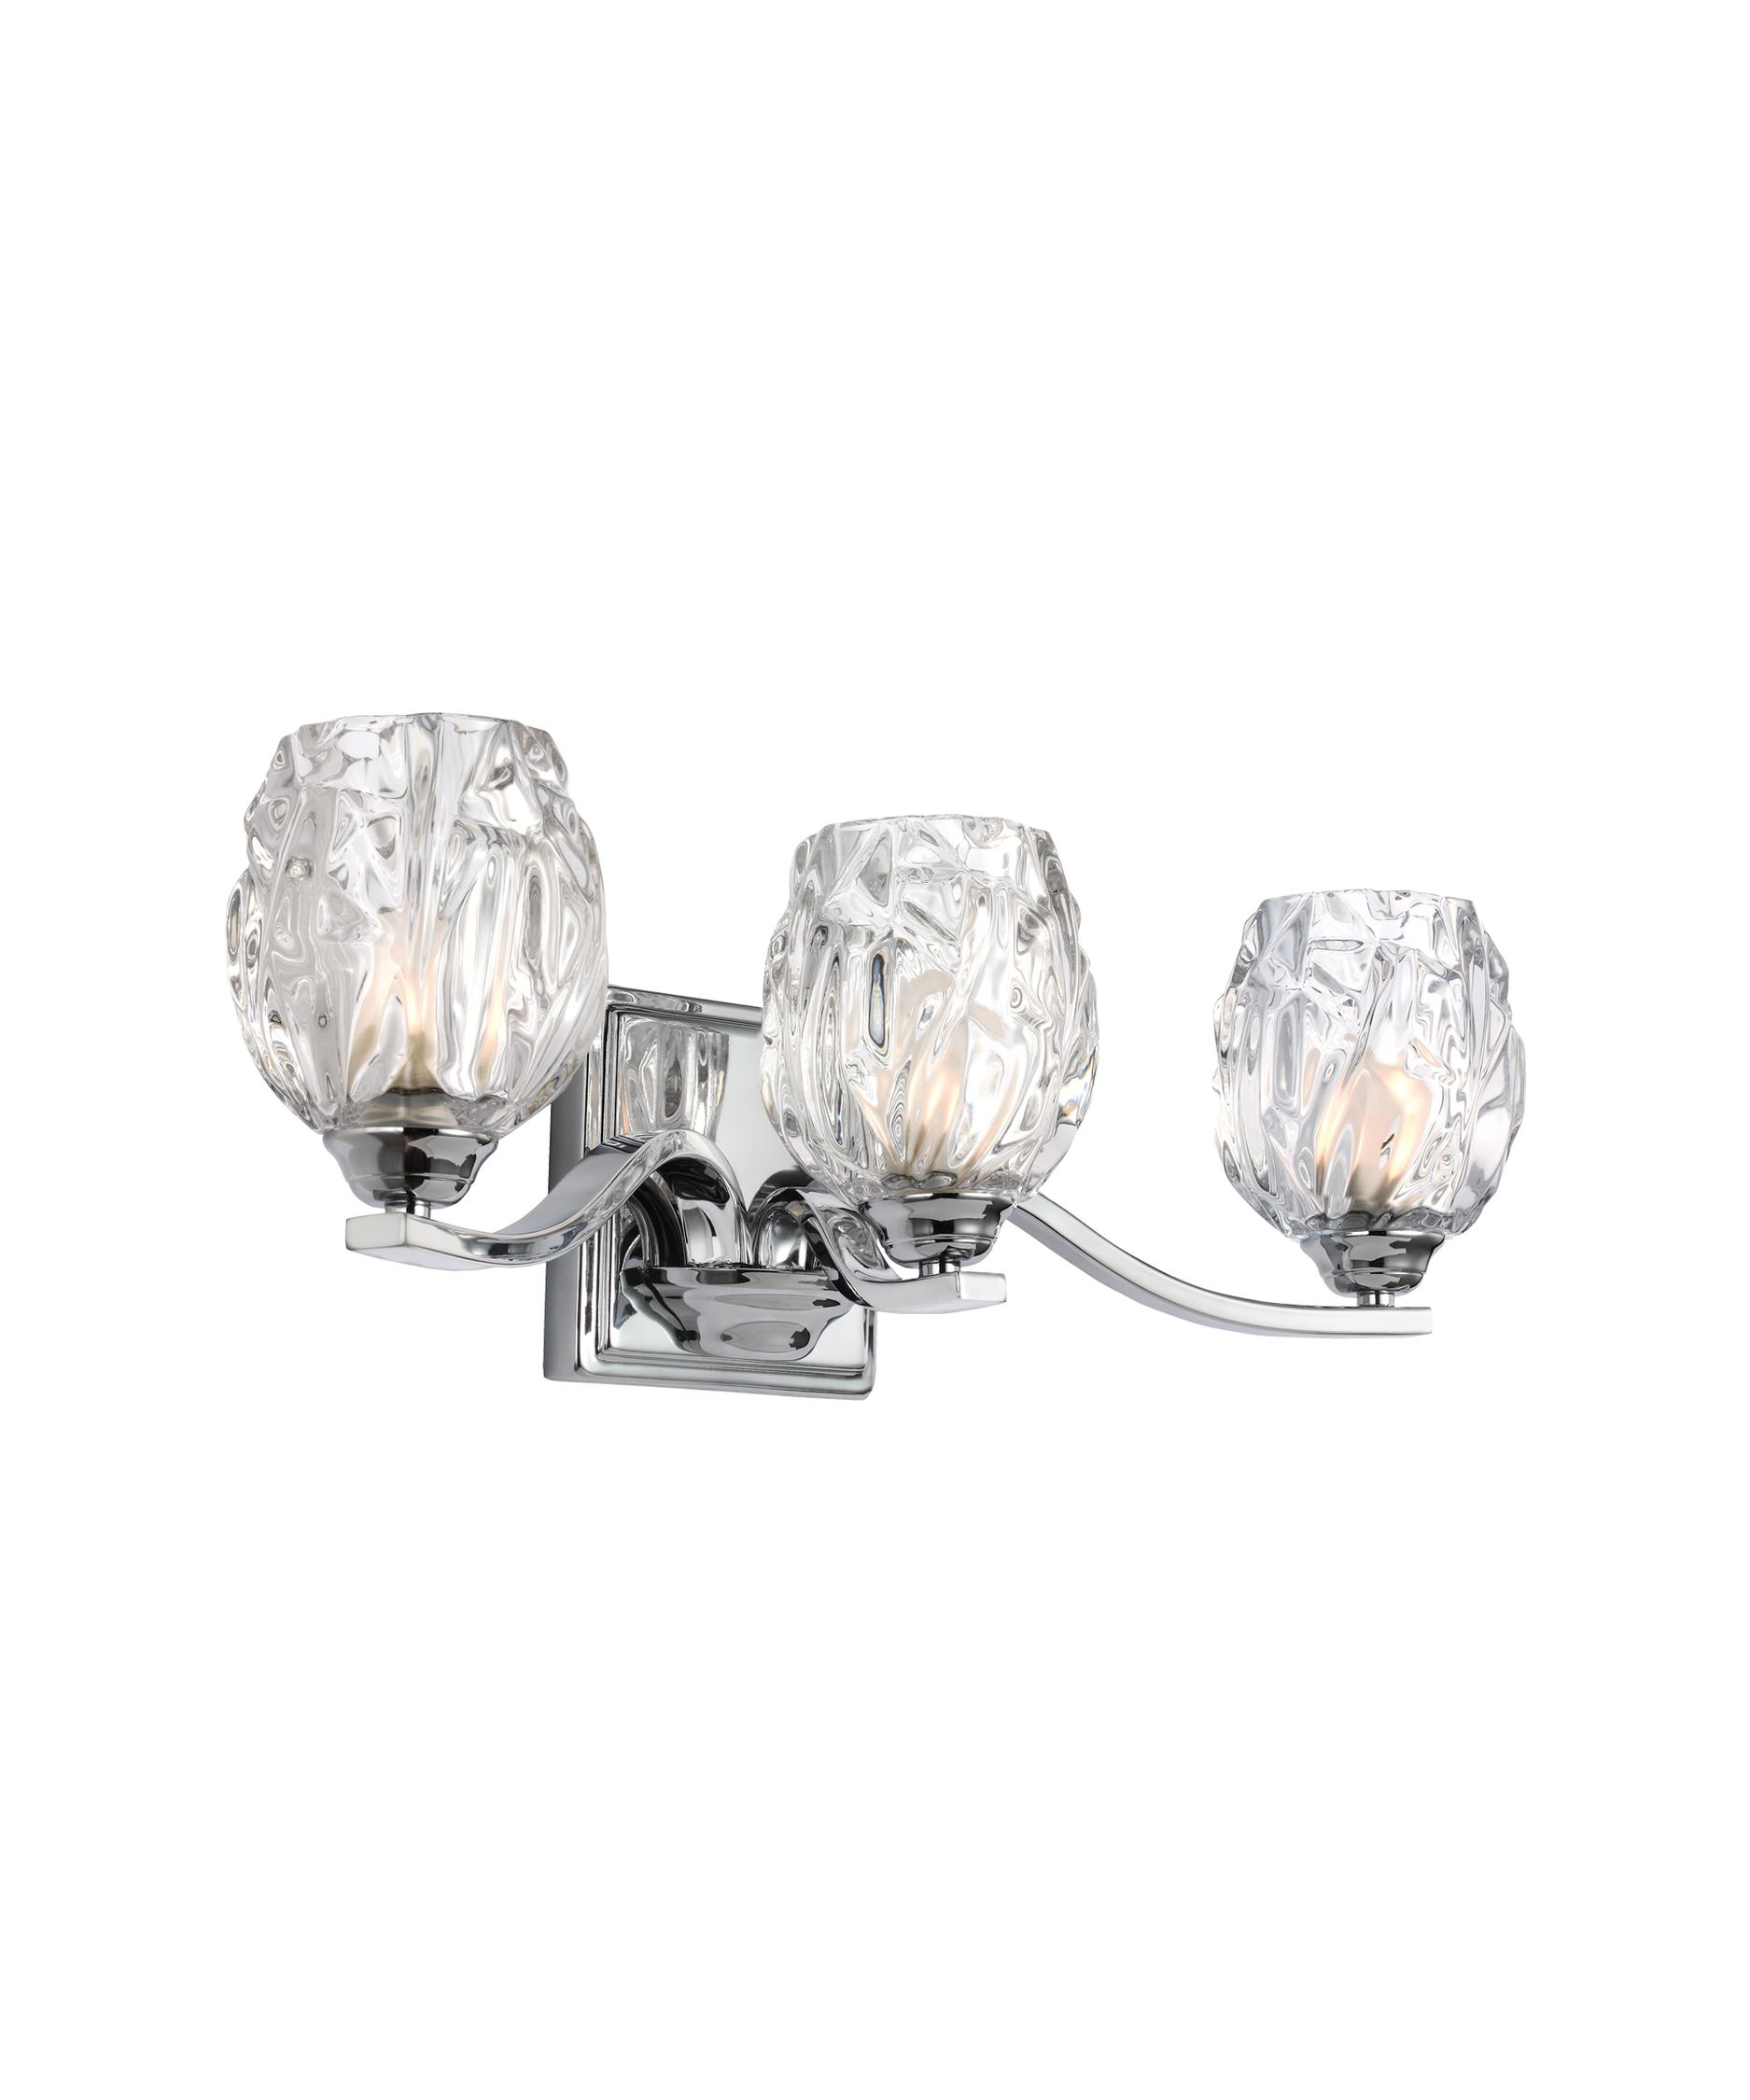 Murray Feiss VS22703 Kalli 20 Inch Wide Bath Vanity Light | Capitol Lighting  1 800lighting.com